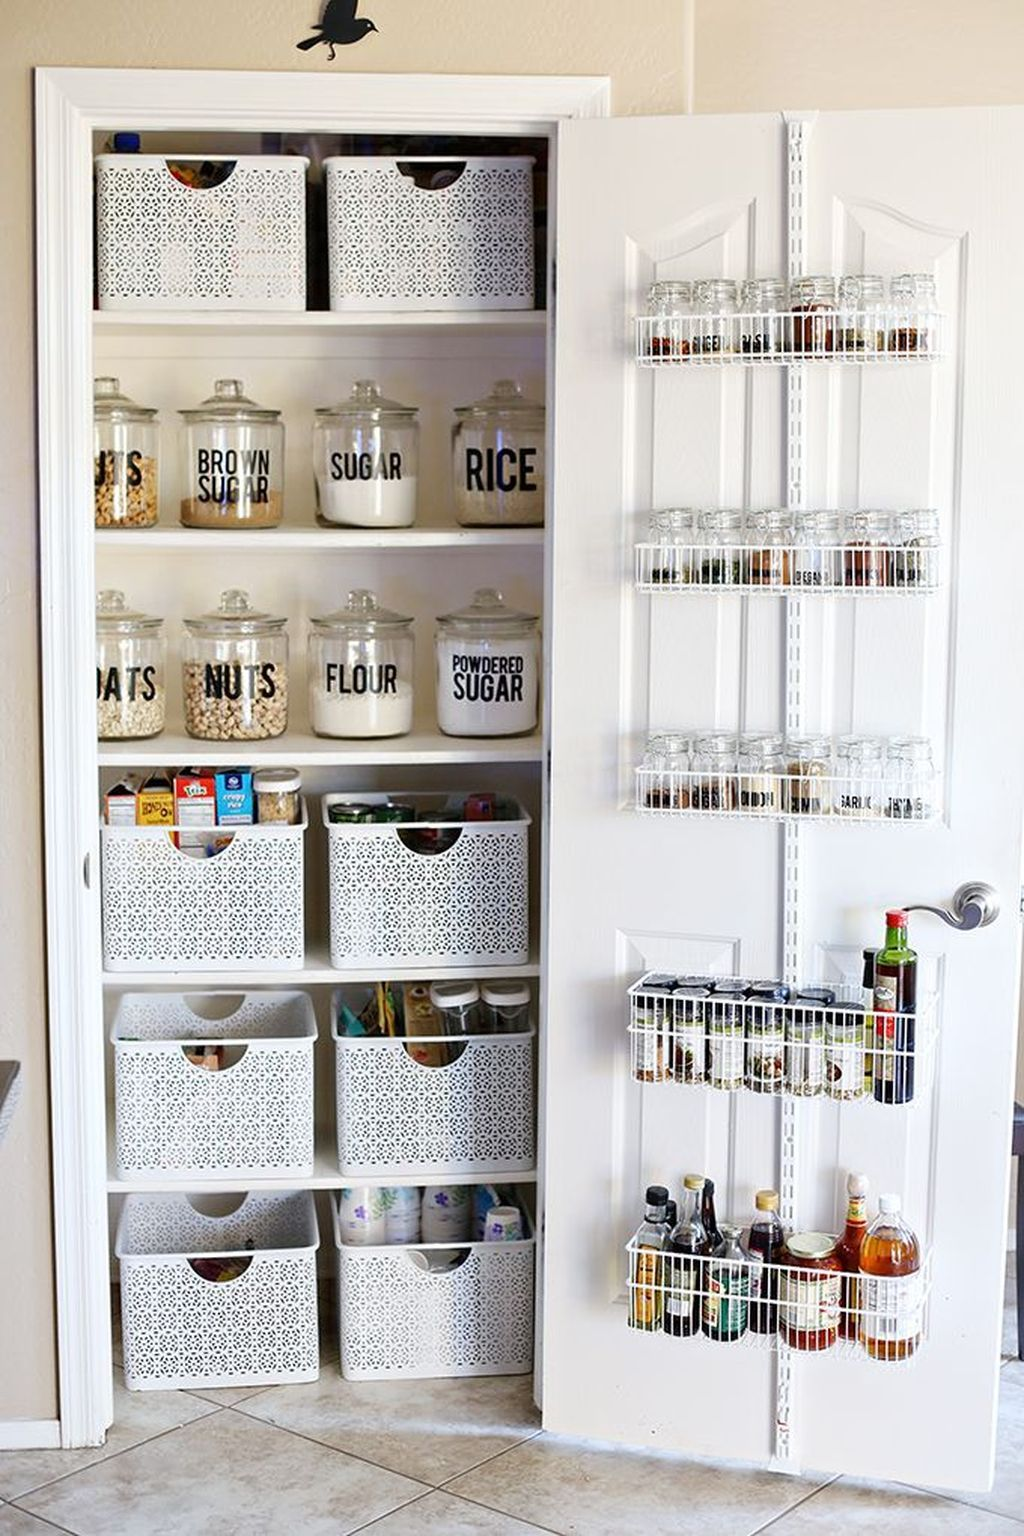 30+ Simple And Easy Kitchen Storage Organization Ideas #organize